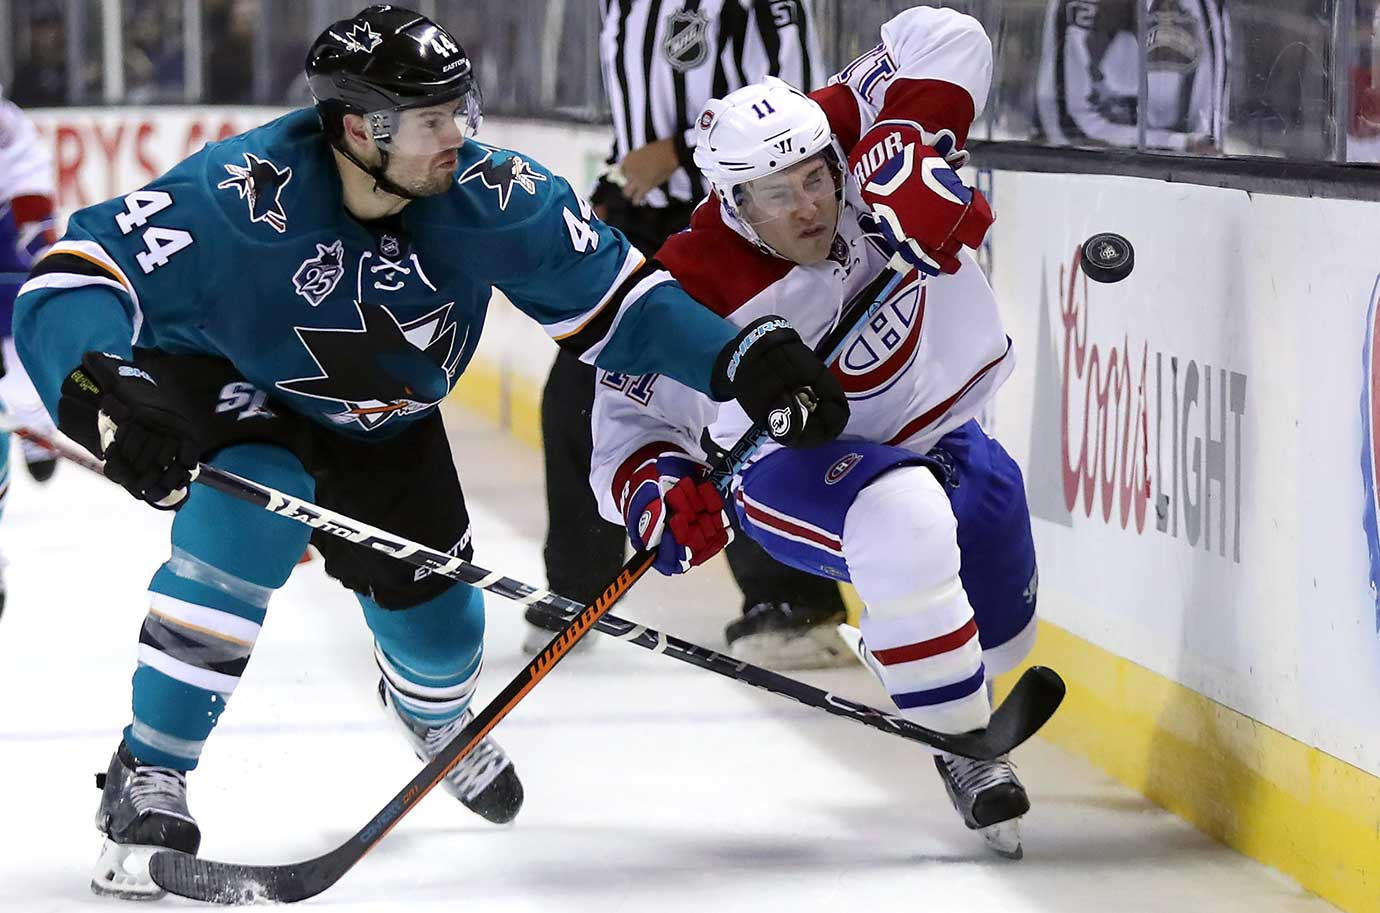 Marc-Edouard Vlasic of San Jose and Brendan Gallagher of Montreal go for the puck.